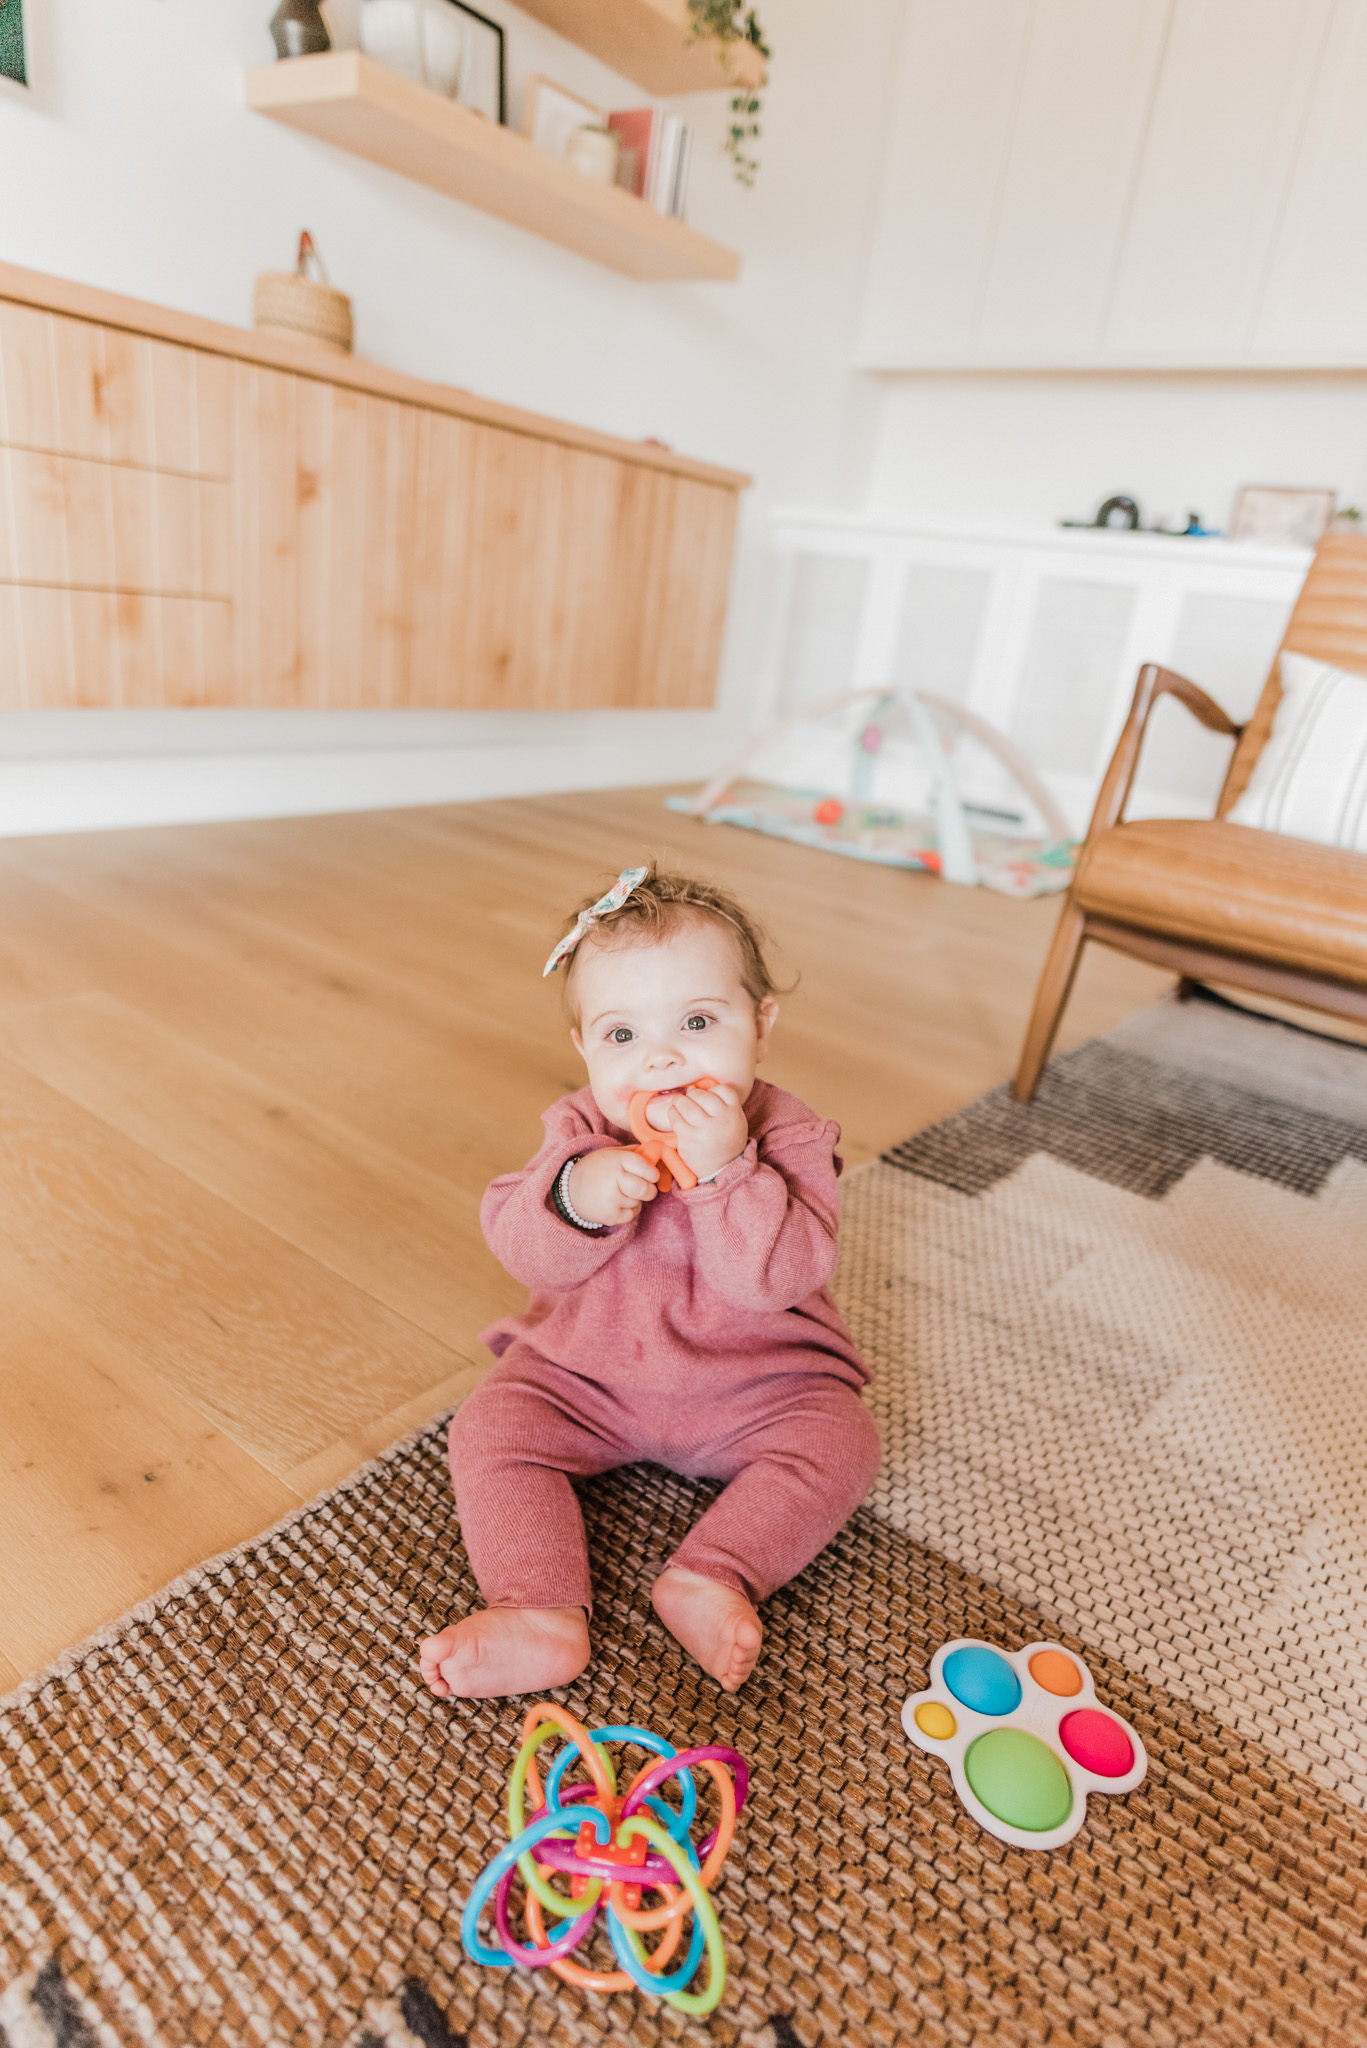 Easter Basket Gift Ideas by popular San Diego lifestyle blog, Navy Grace: image of a baby girl sitting on the floor and playing with baby toys.